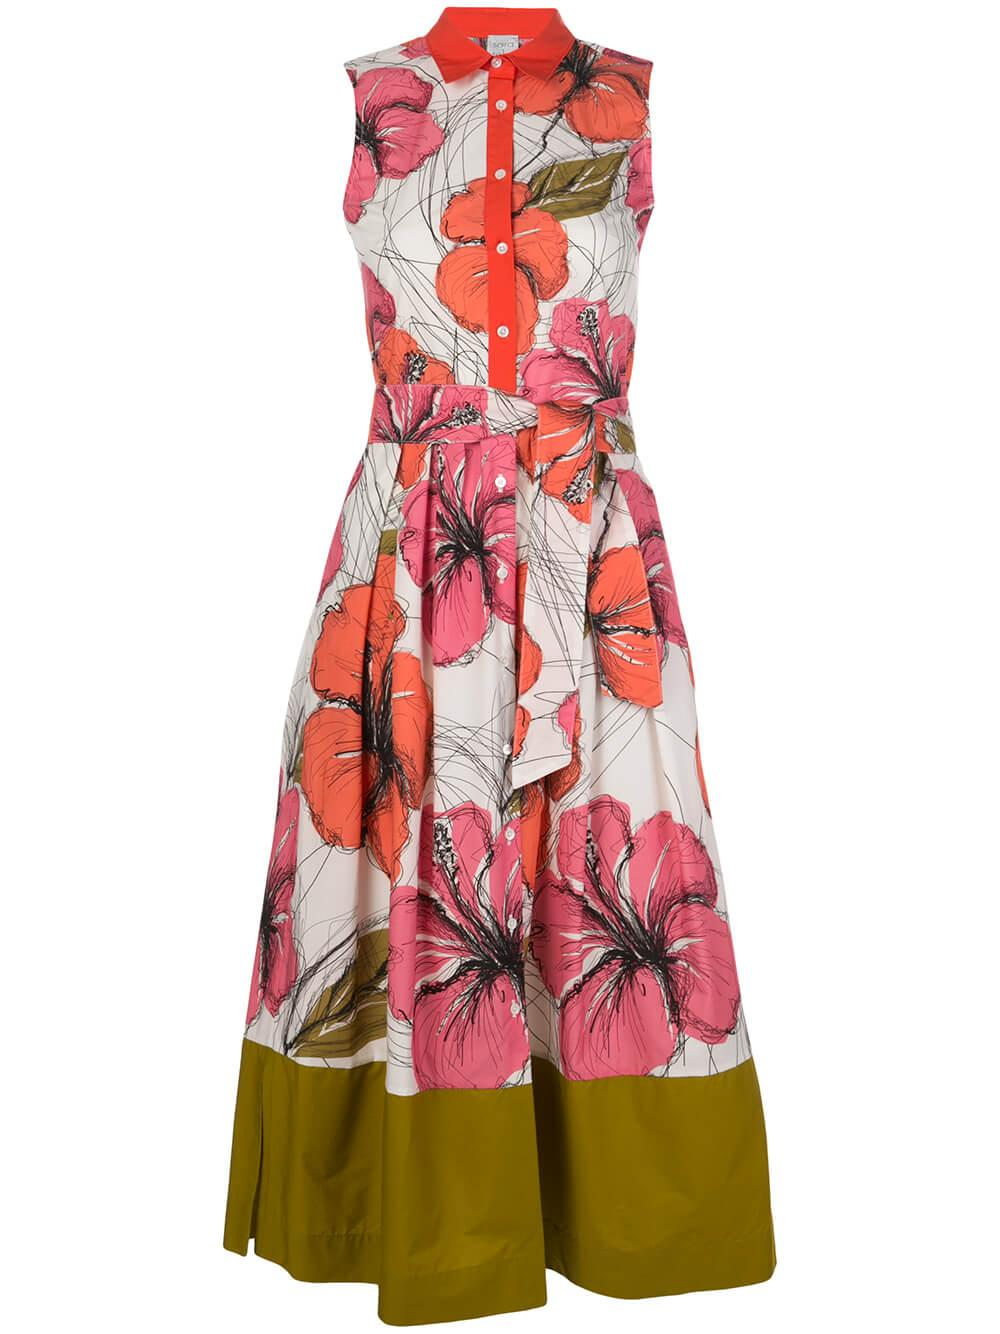 Sleeveless Midi Floral Dress With Olive Item # 8ZAILEE-3-31